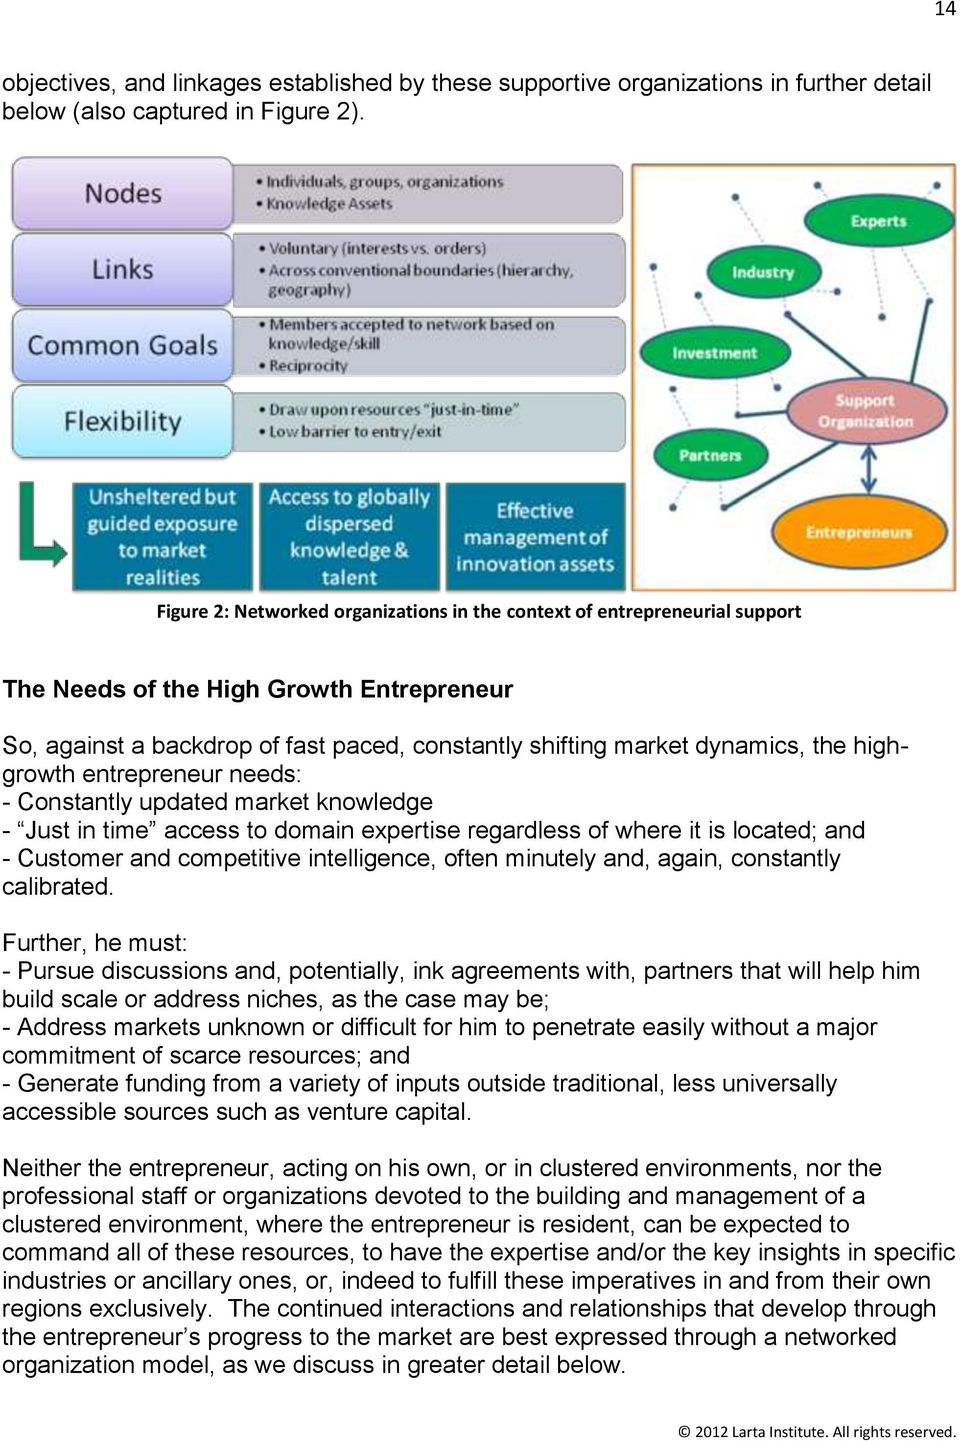 highgrowth entrepreneur needs: - Constantly updated market knowledge - Just in time access to domain expertise regardless of where it is located; and - Customer and competitive intelligence, often